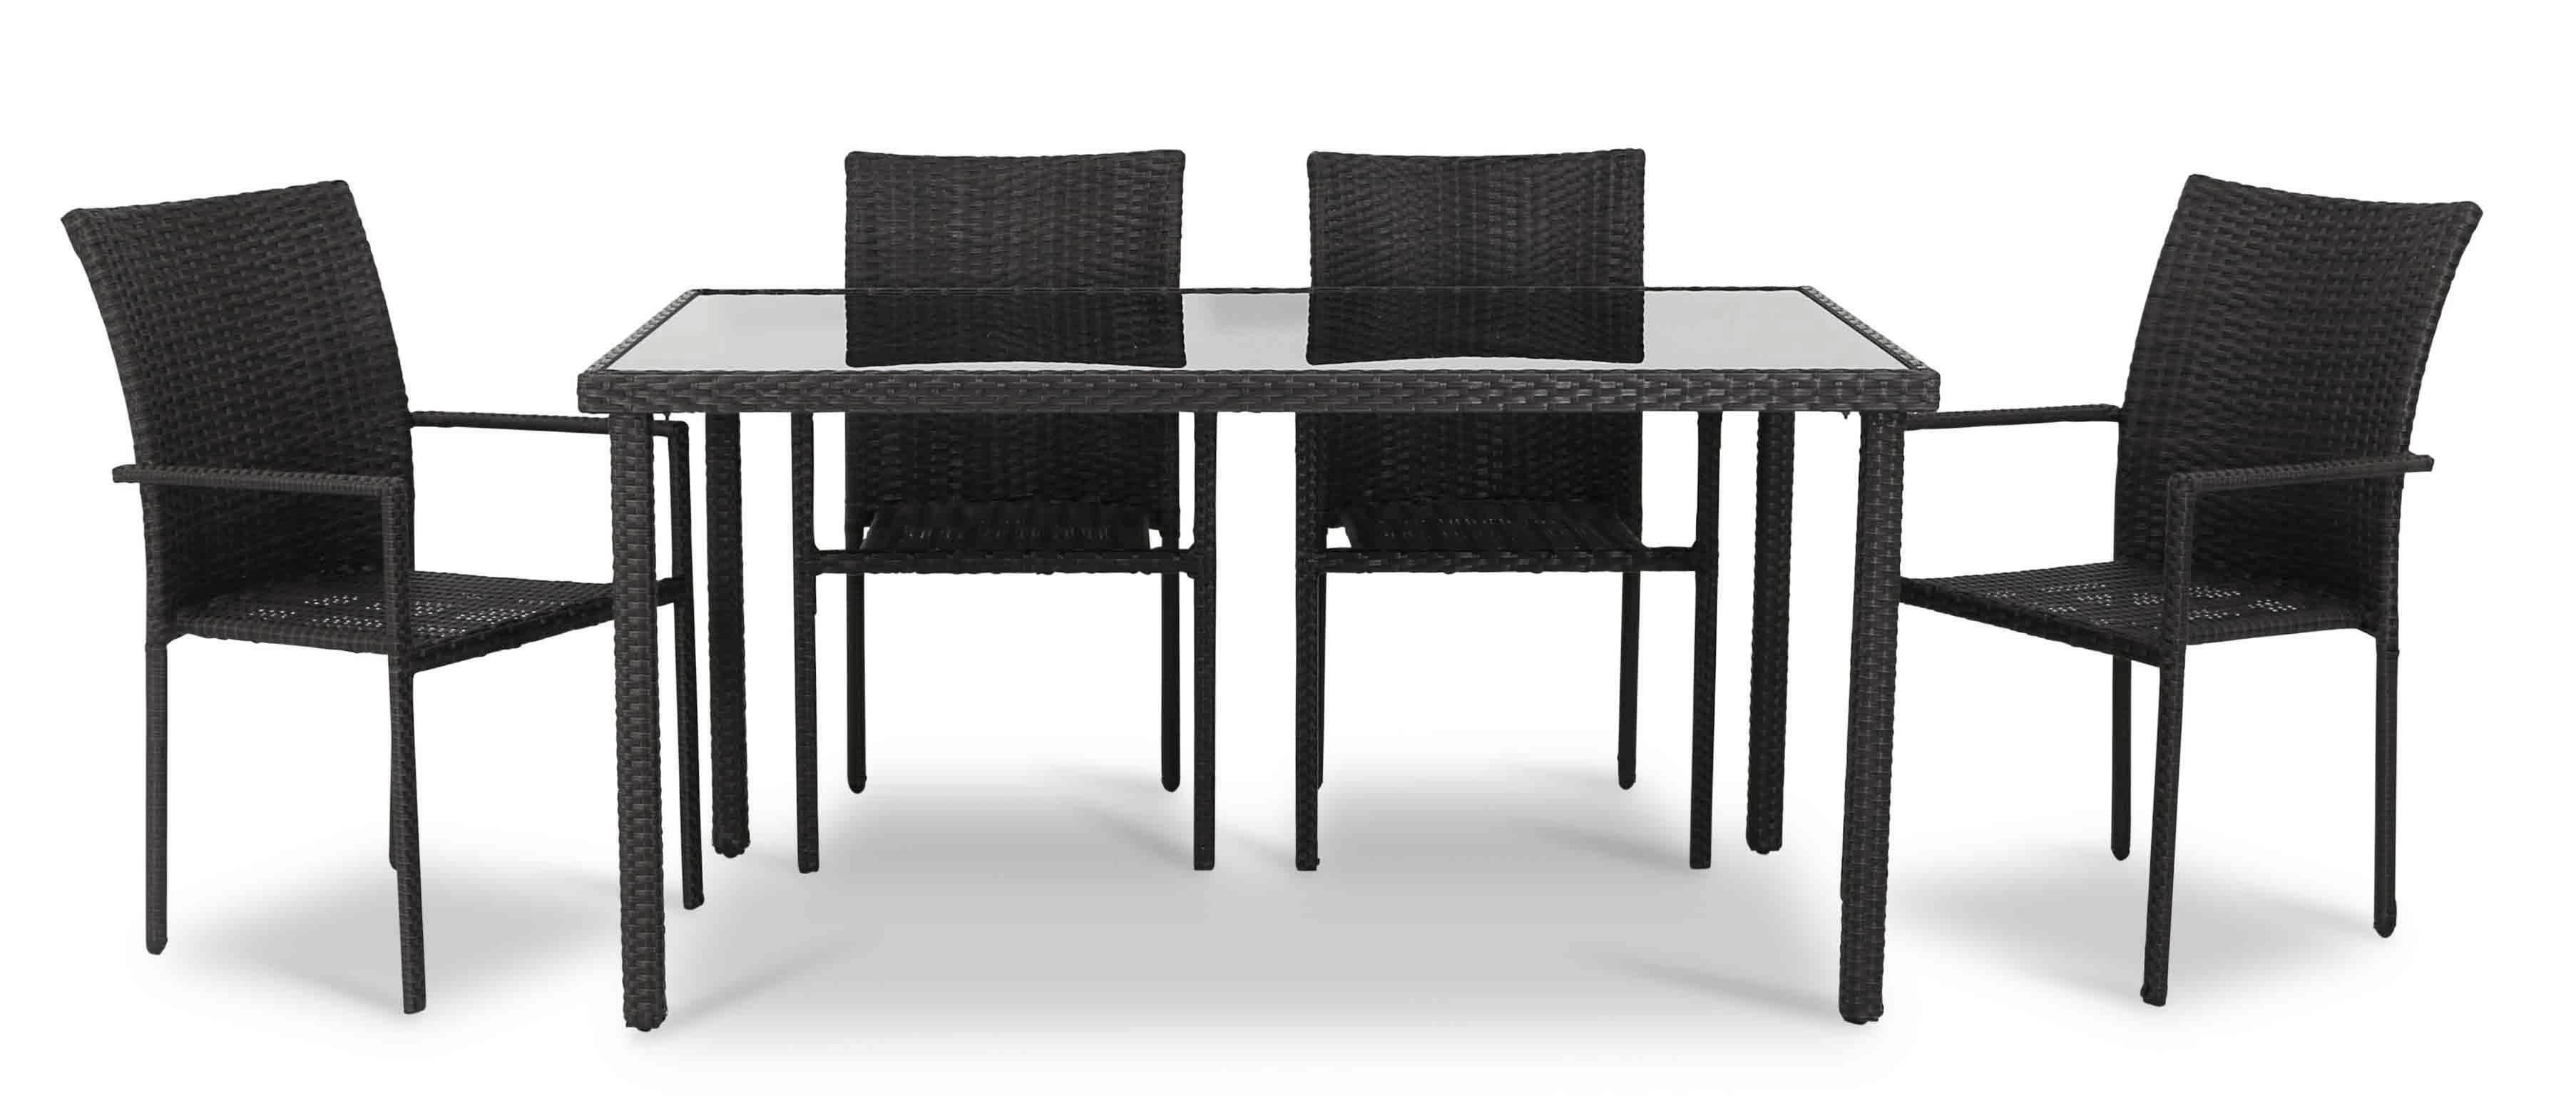 Wakiky Outdoor Dining Set 1 4 Furniture Home D Cor Fortytwo